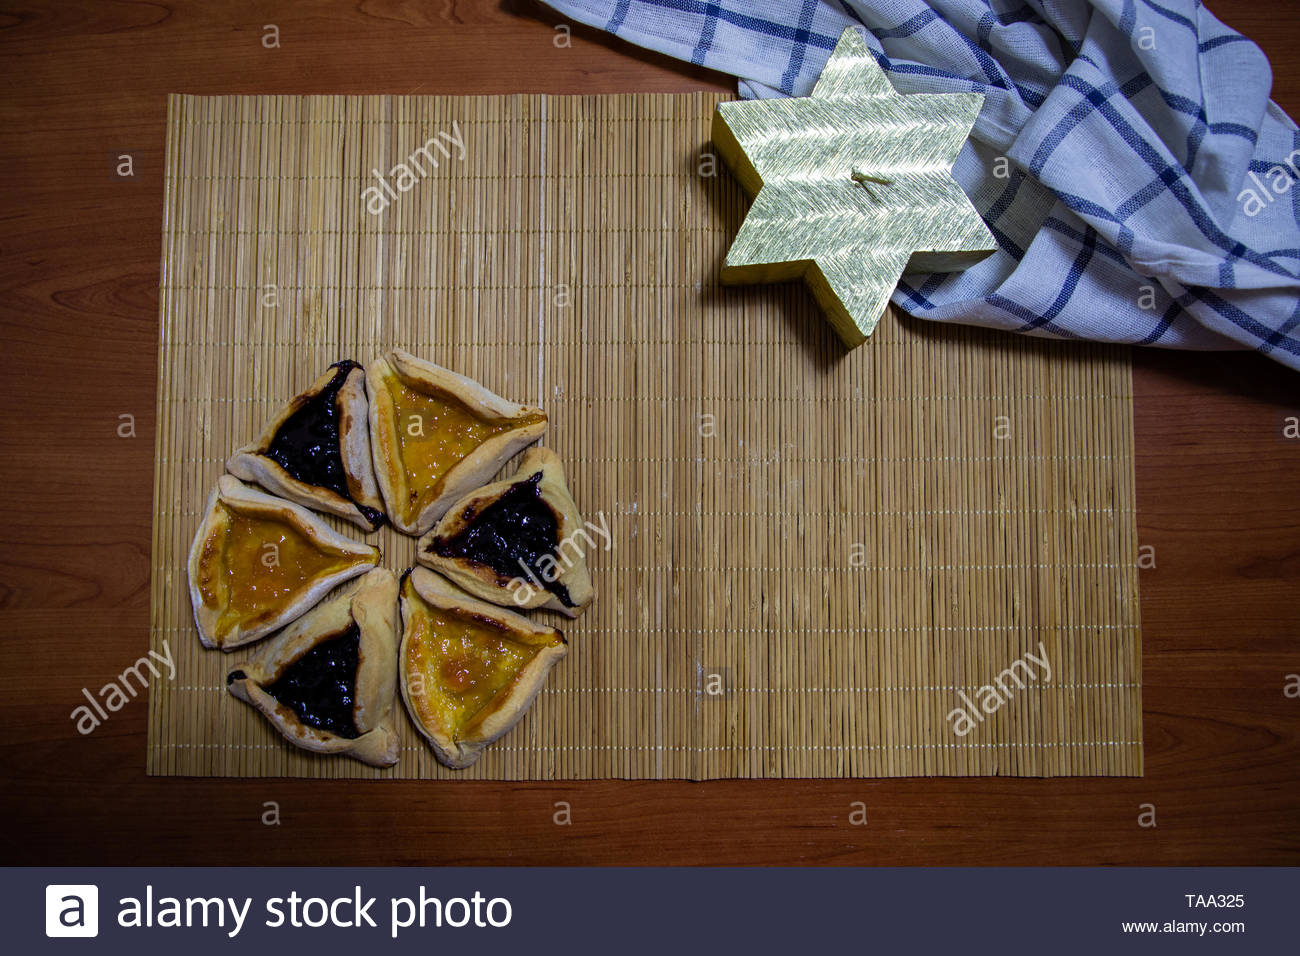 Hamantash Purim blueberry and apricot jam cookies with wooden table background and David star shape candle - Stock Image